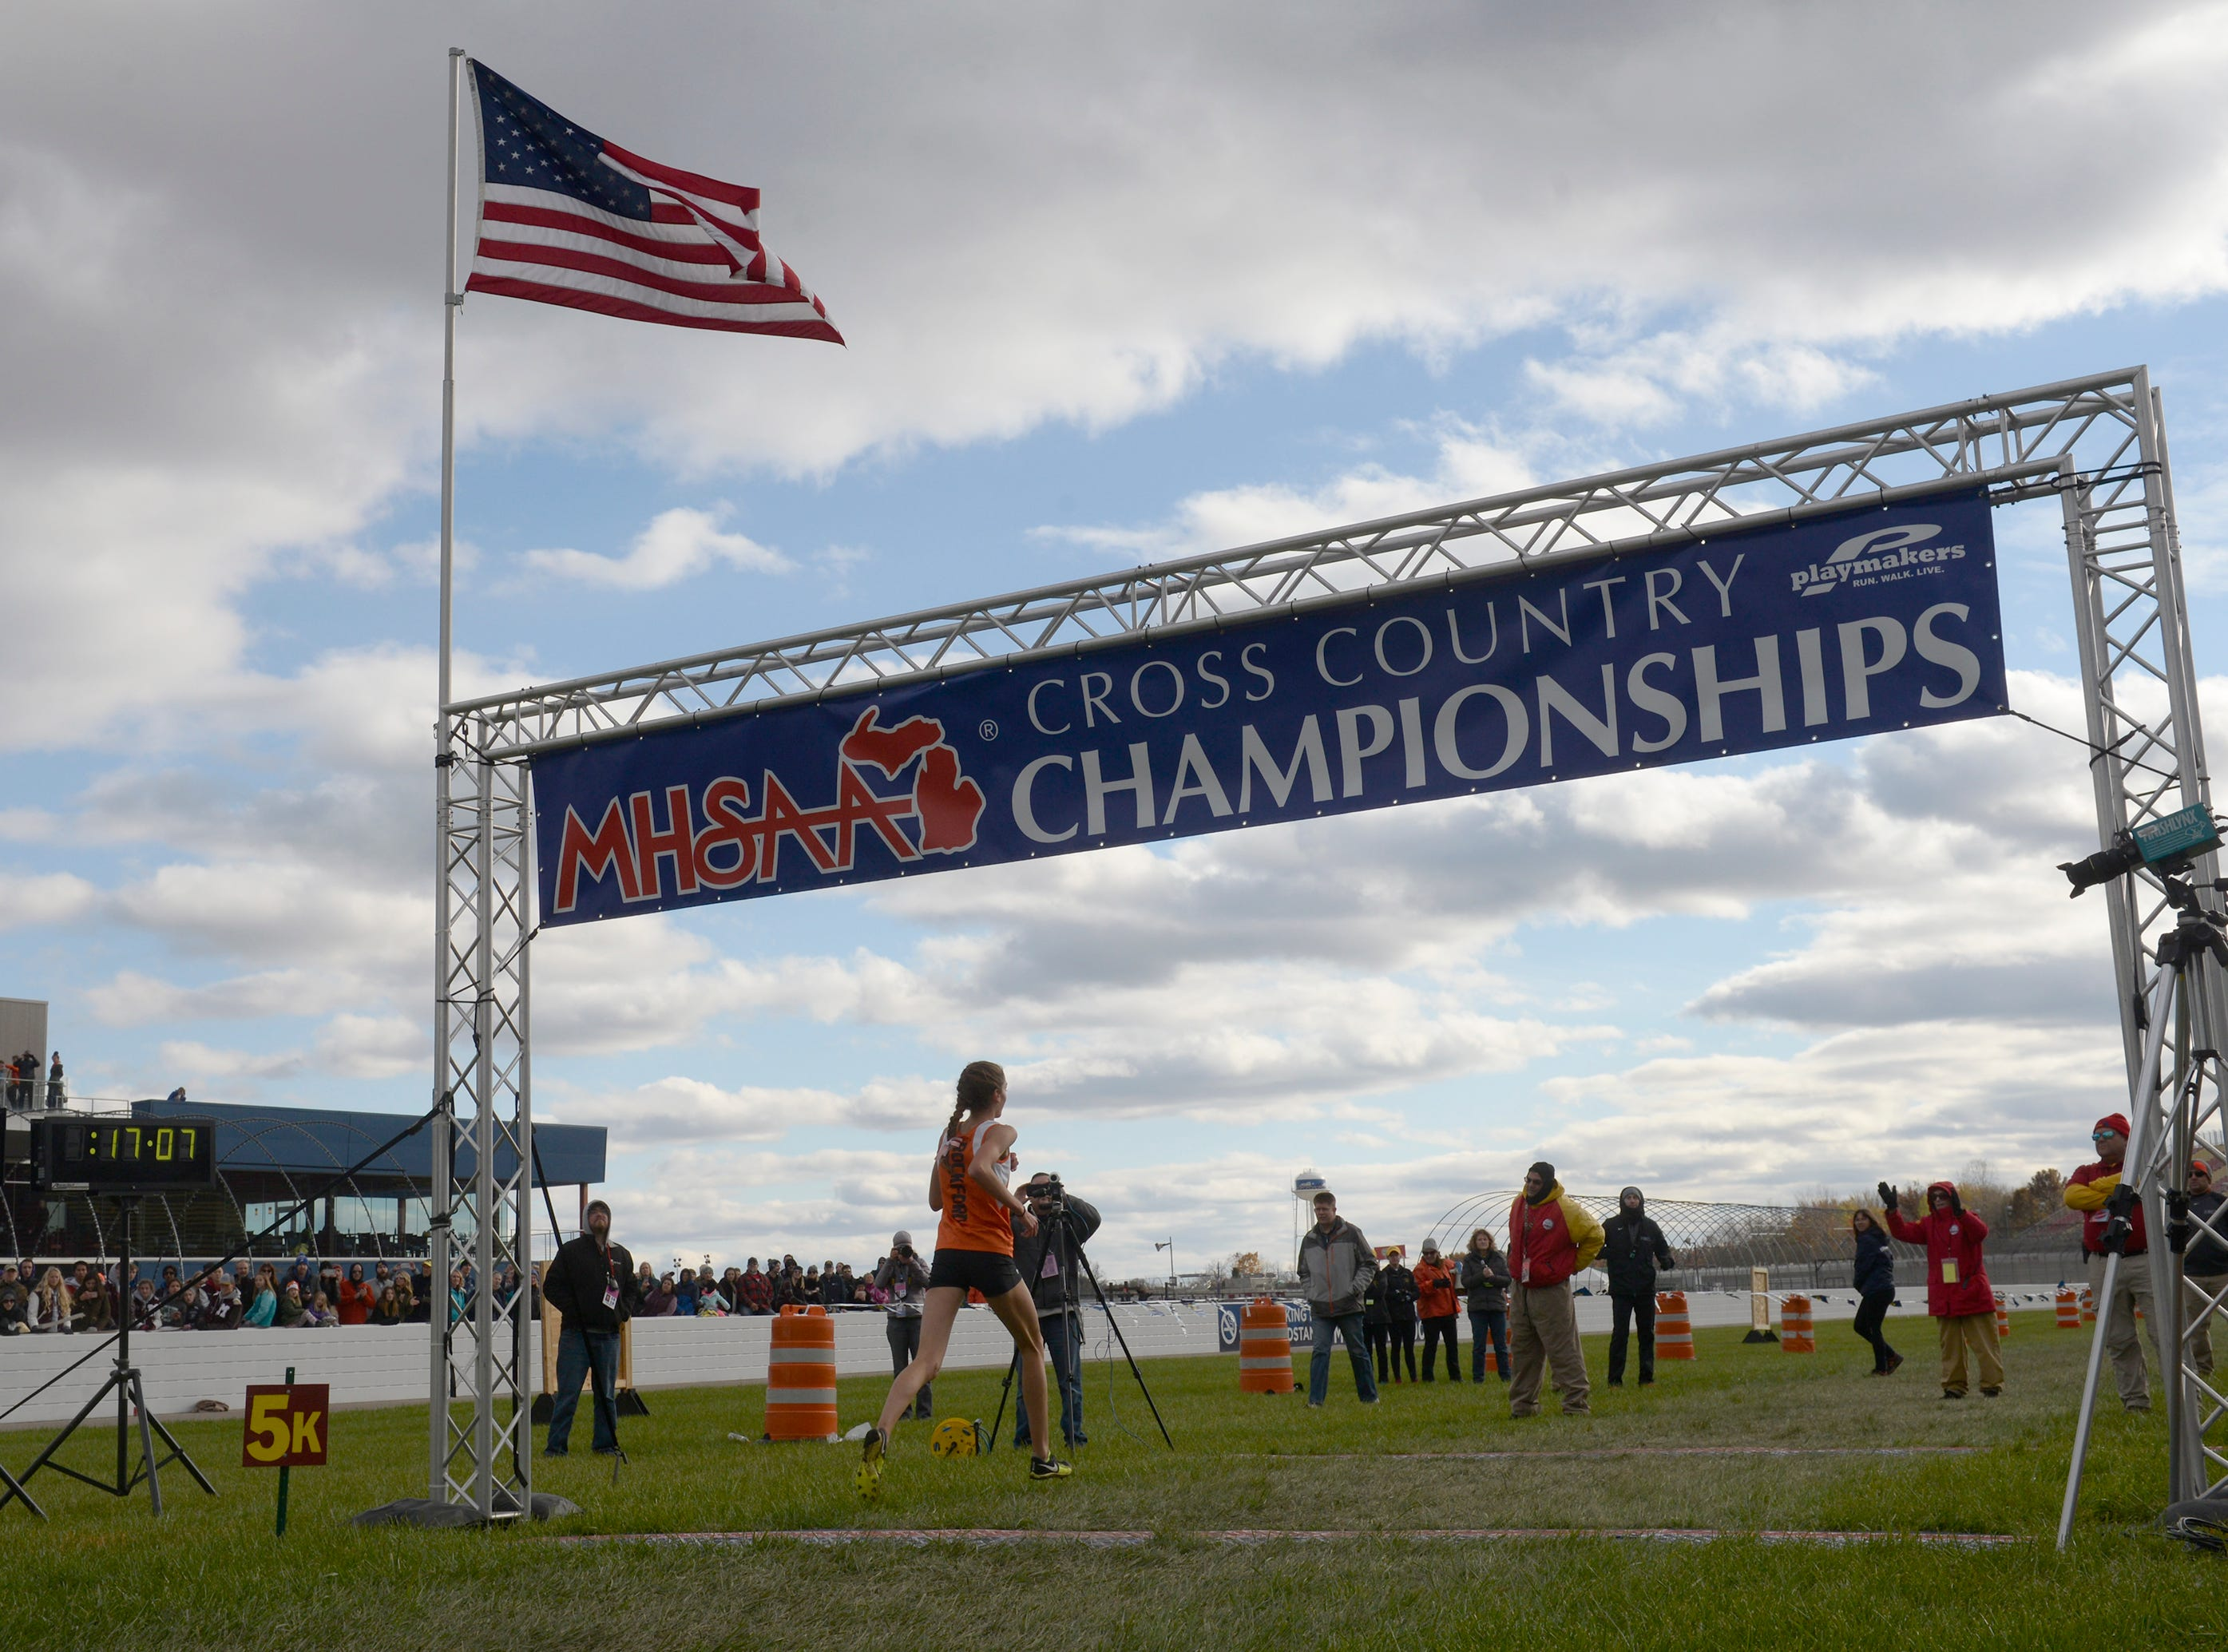 Rockford's Erika VanderLende crossed the finish line in 17:08.4 to win the Division 1 2018 cross country finals at Michigan International Speedway.